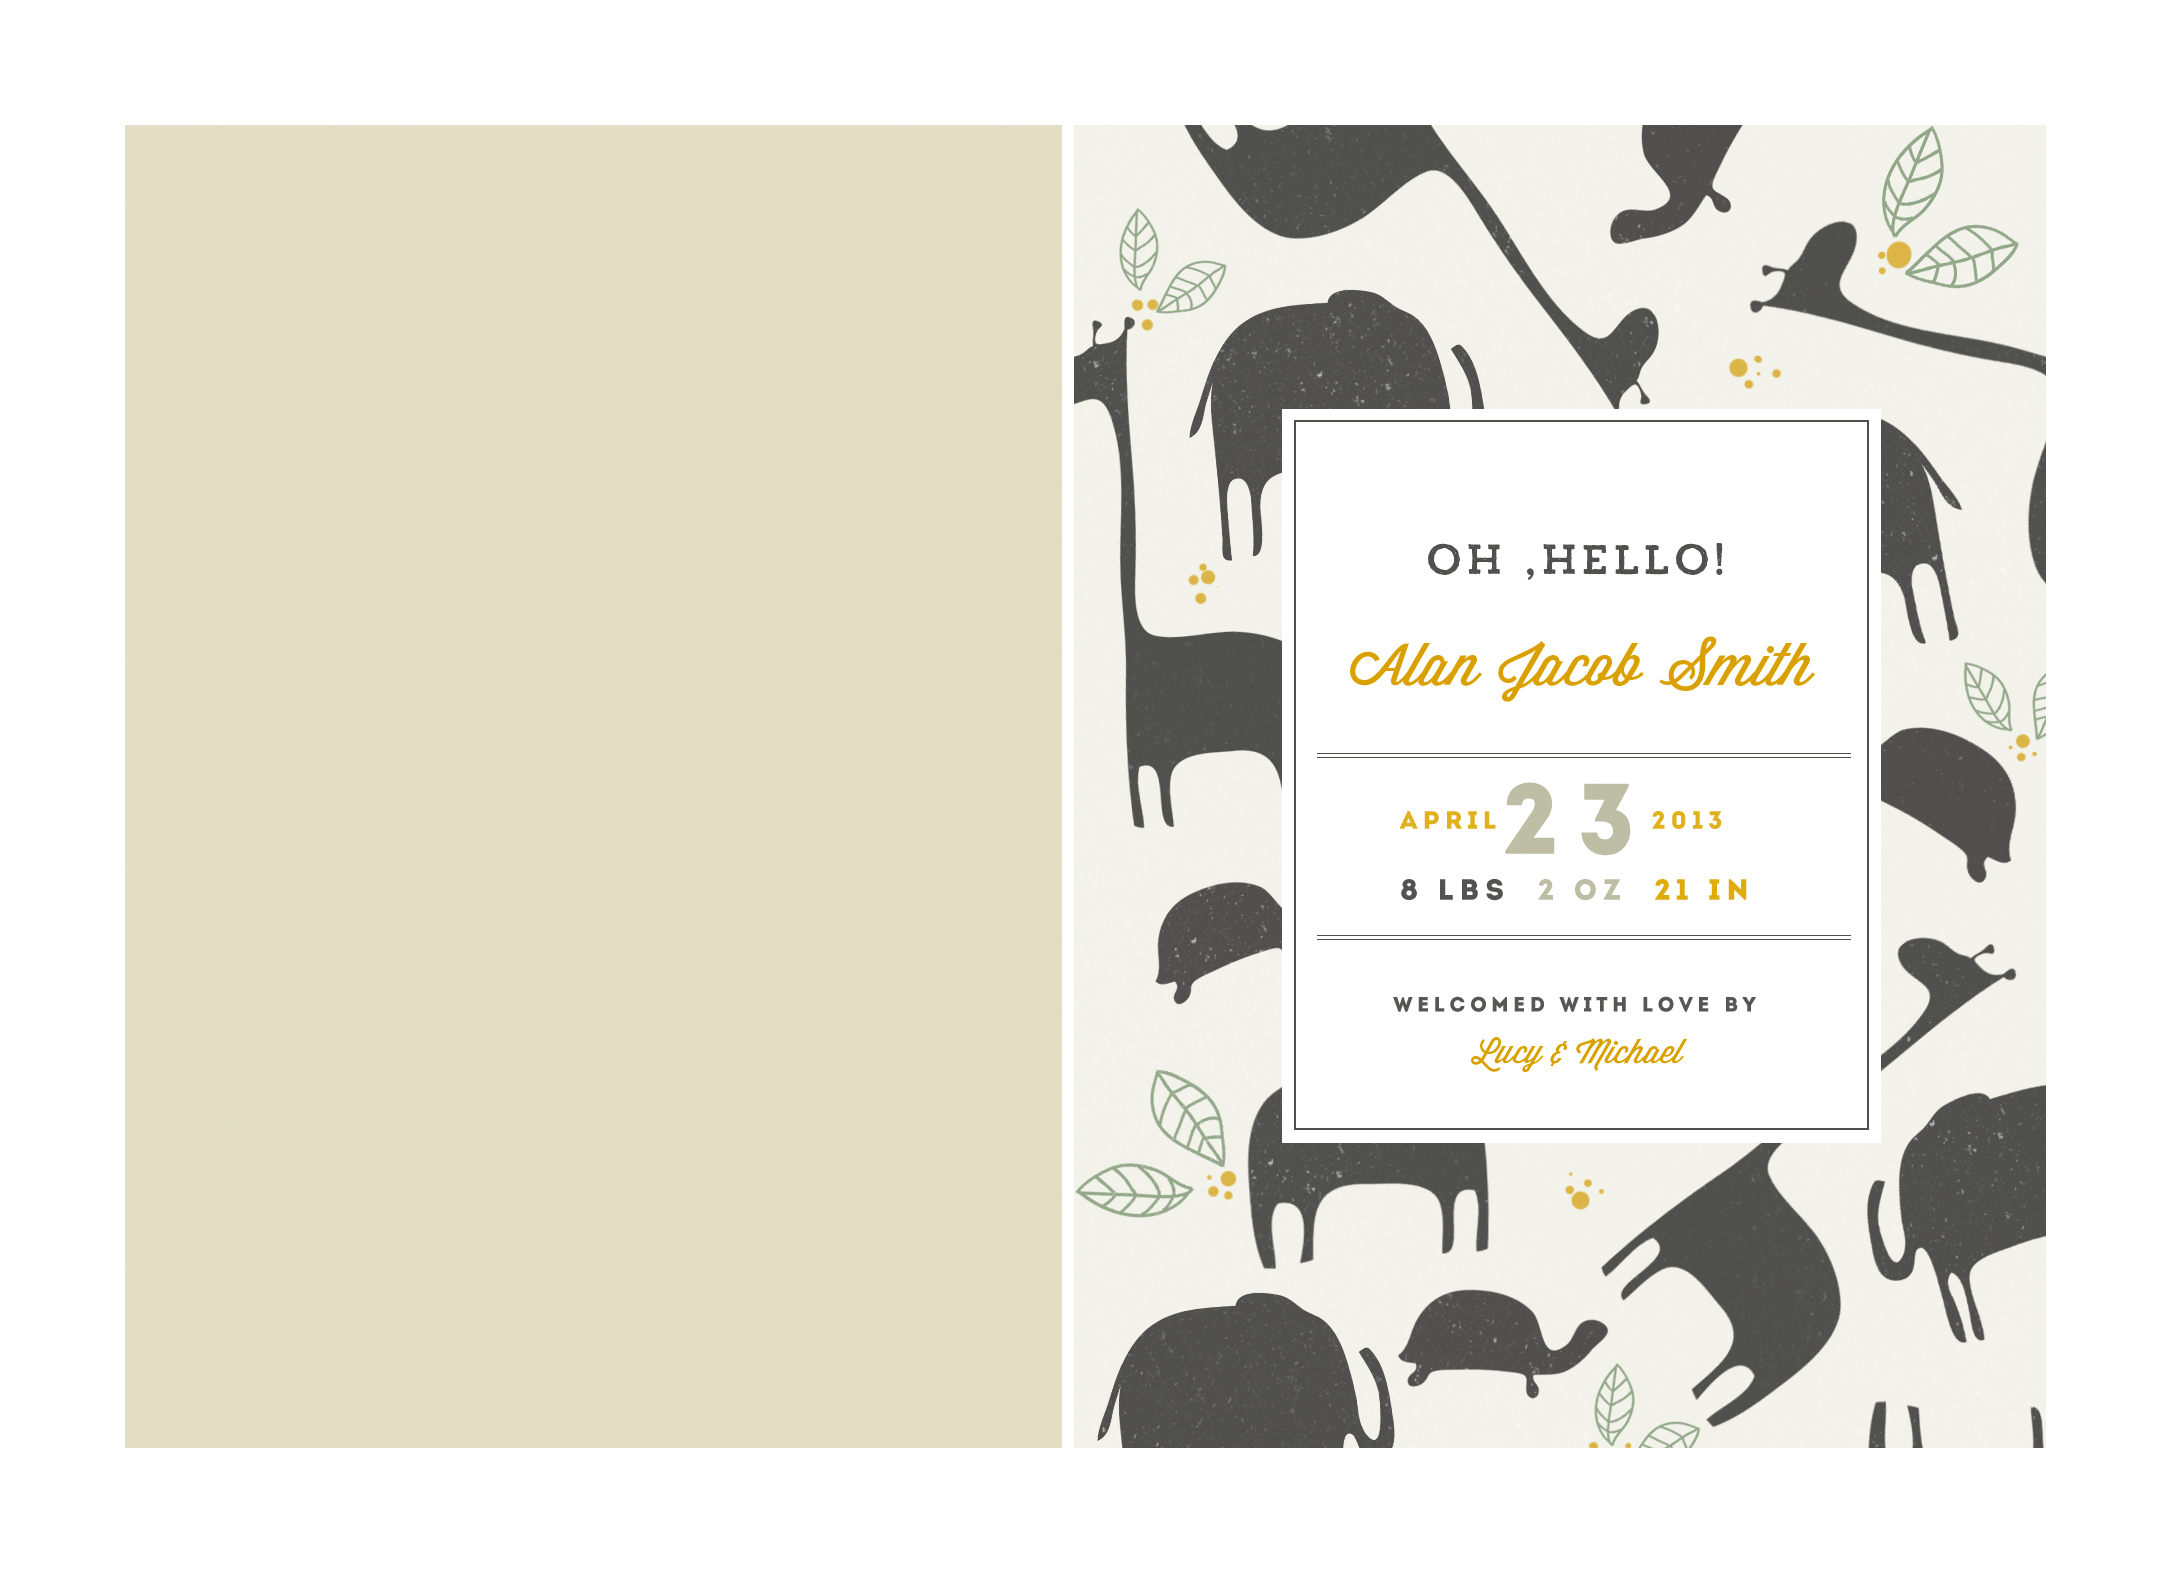 hellothere_5x7whccCard1front_ohsnapa.jpg